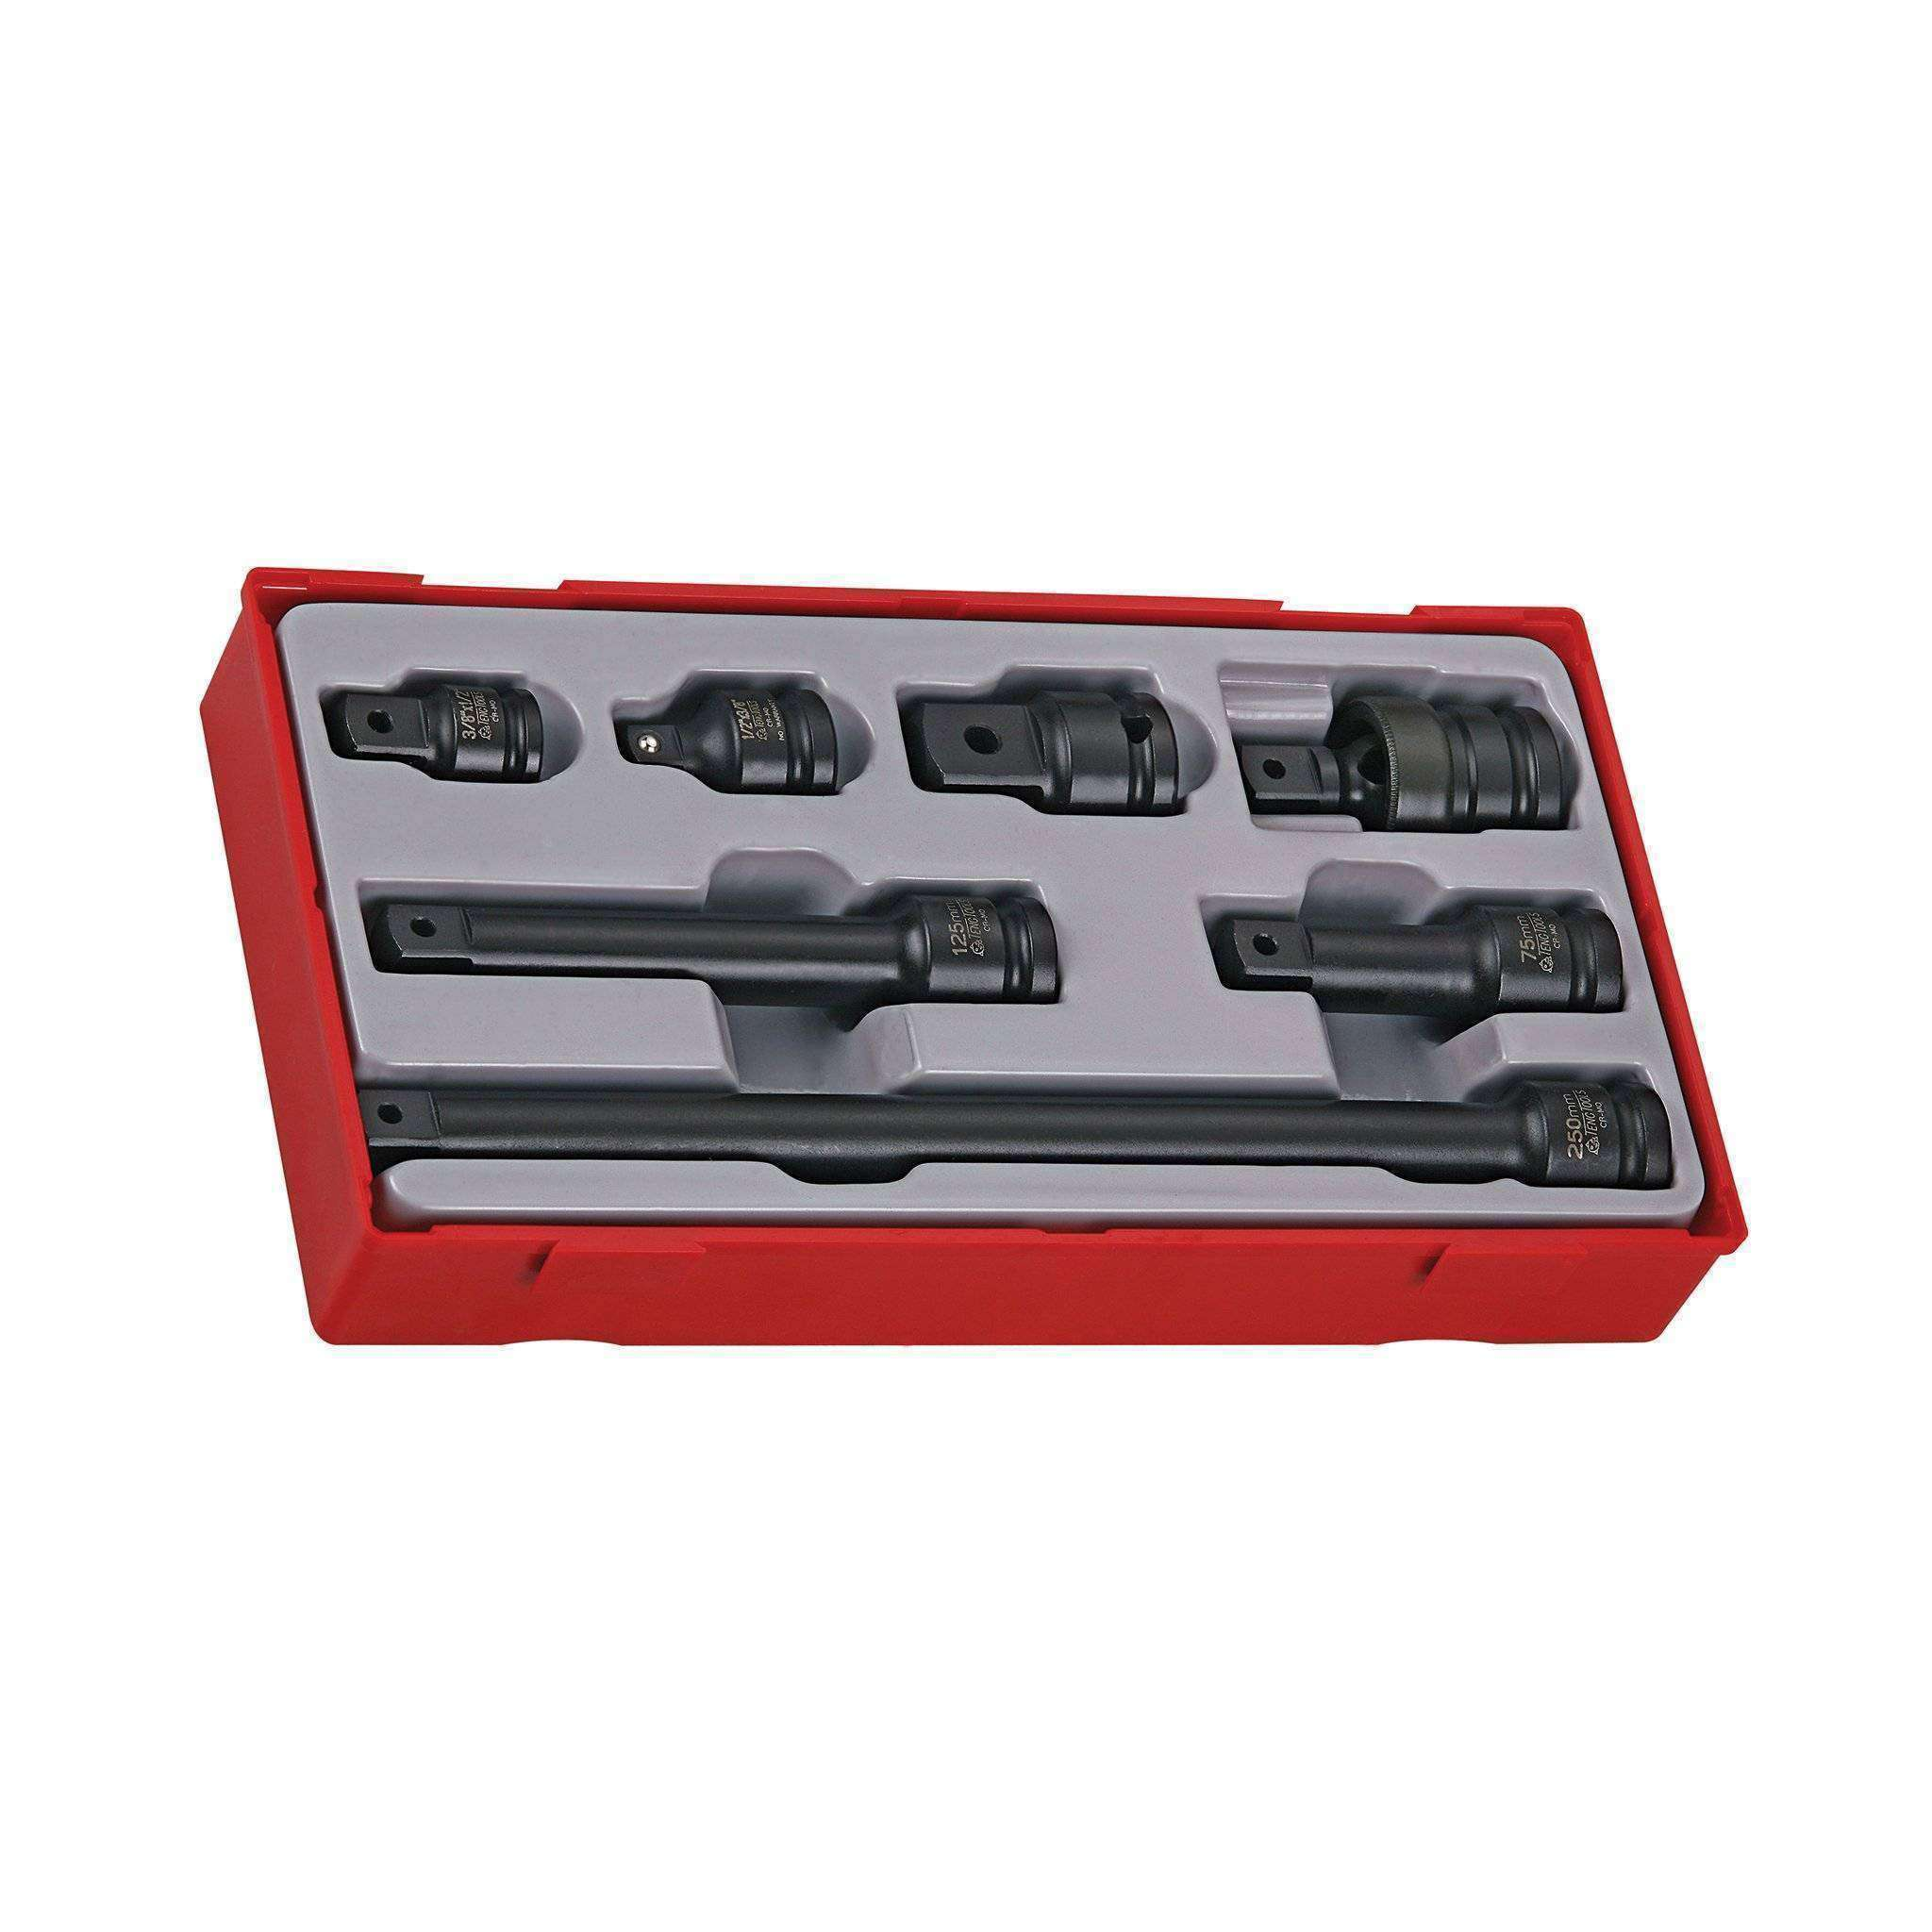 Teng Tools TT9207 - 7 Piece 1/2 inch Drive Impact Socket Set - Teng Tools USA